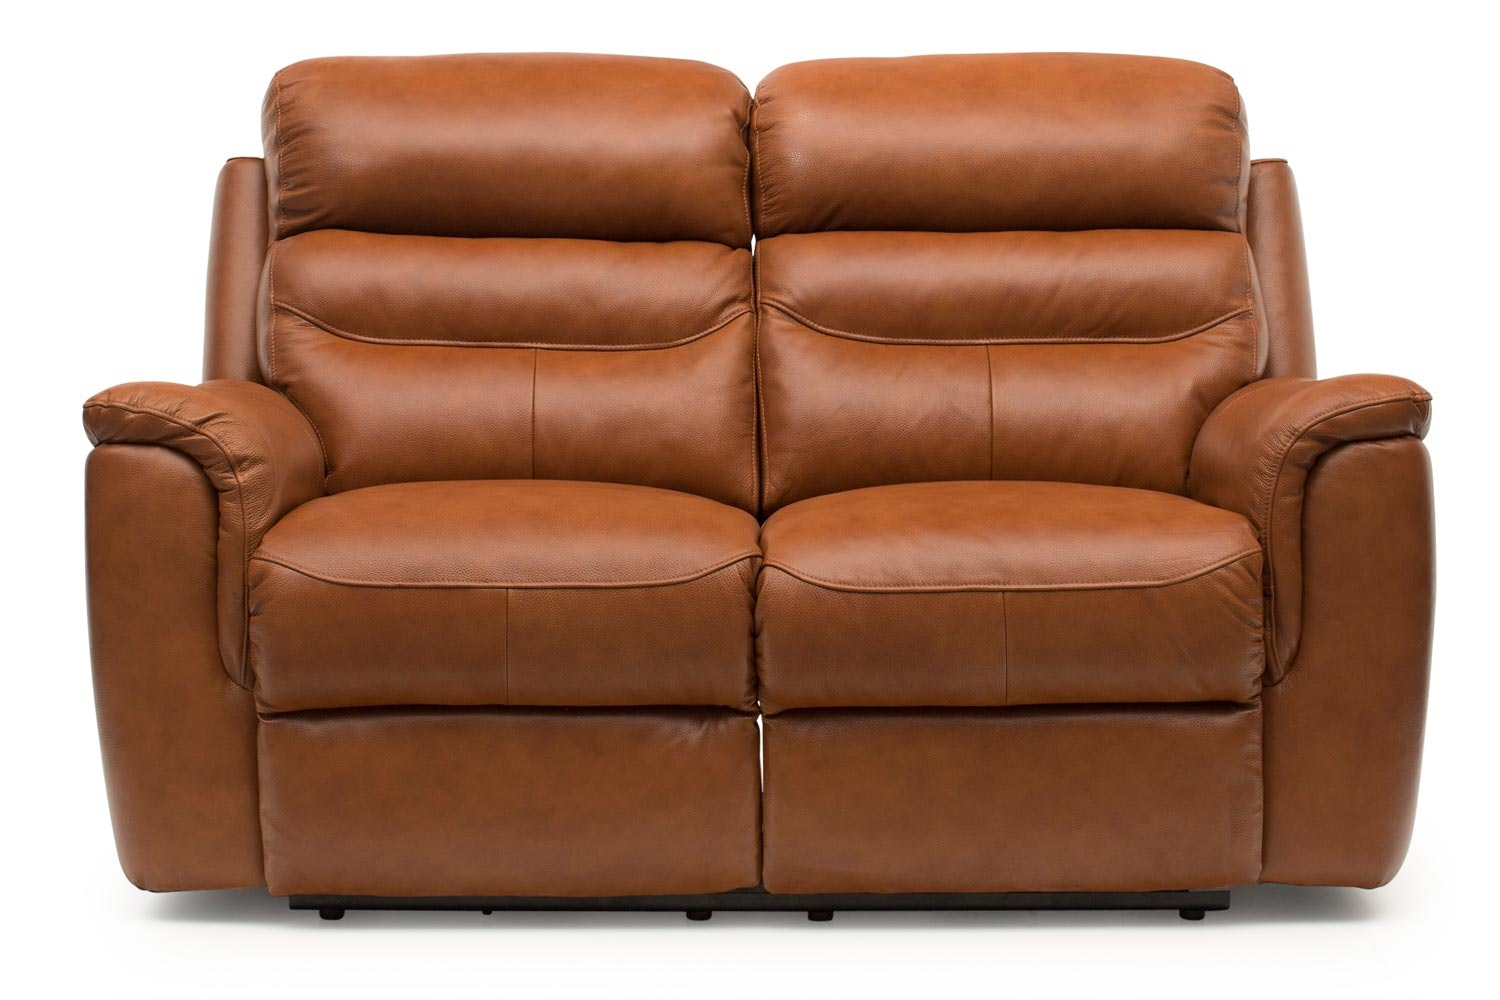 Bayle 2 Seater Recliner | Electric | Leather